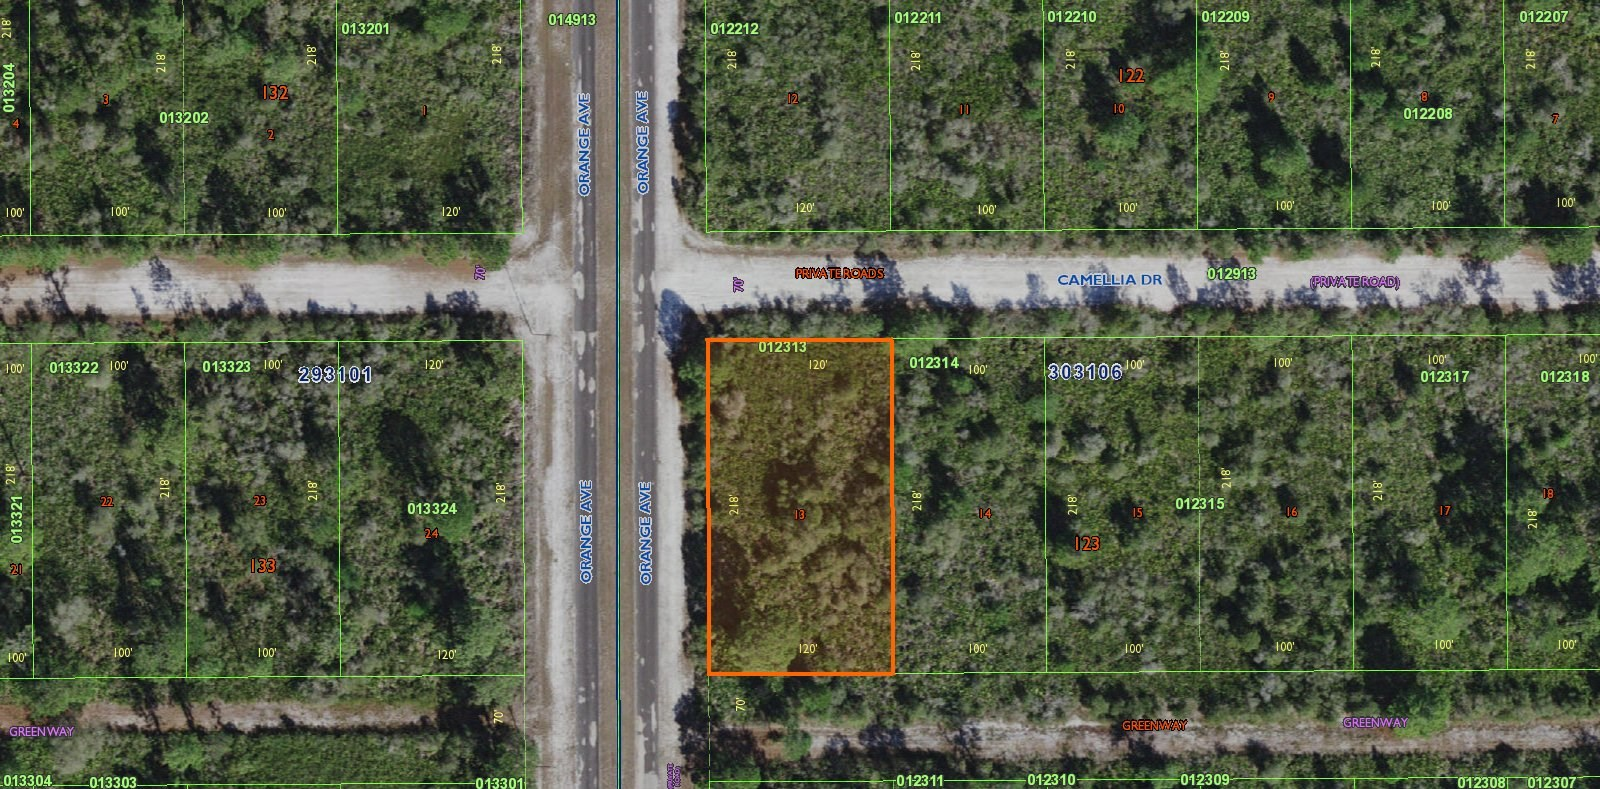 0.50 ACRE LOT, VACANT LAND, CENTRAL FLORIDA, COUNTRY LIVING